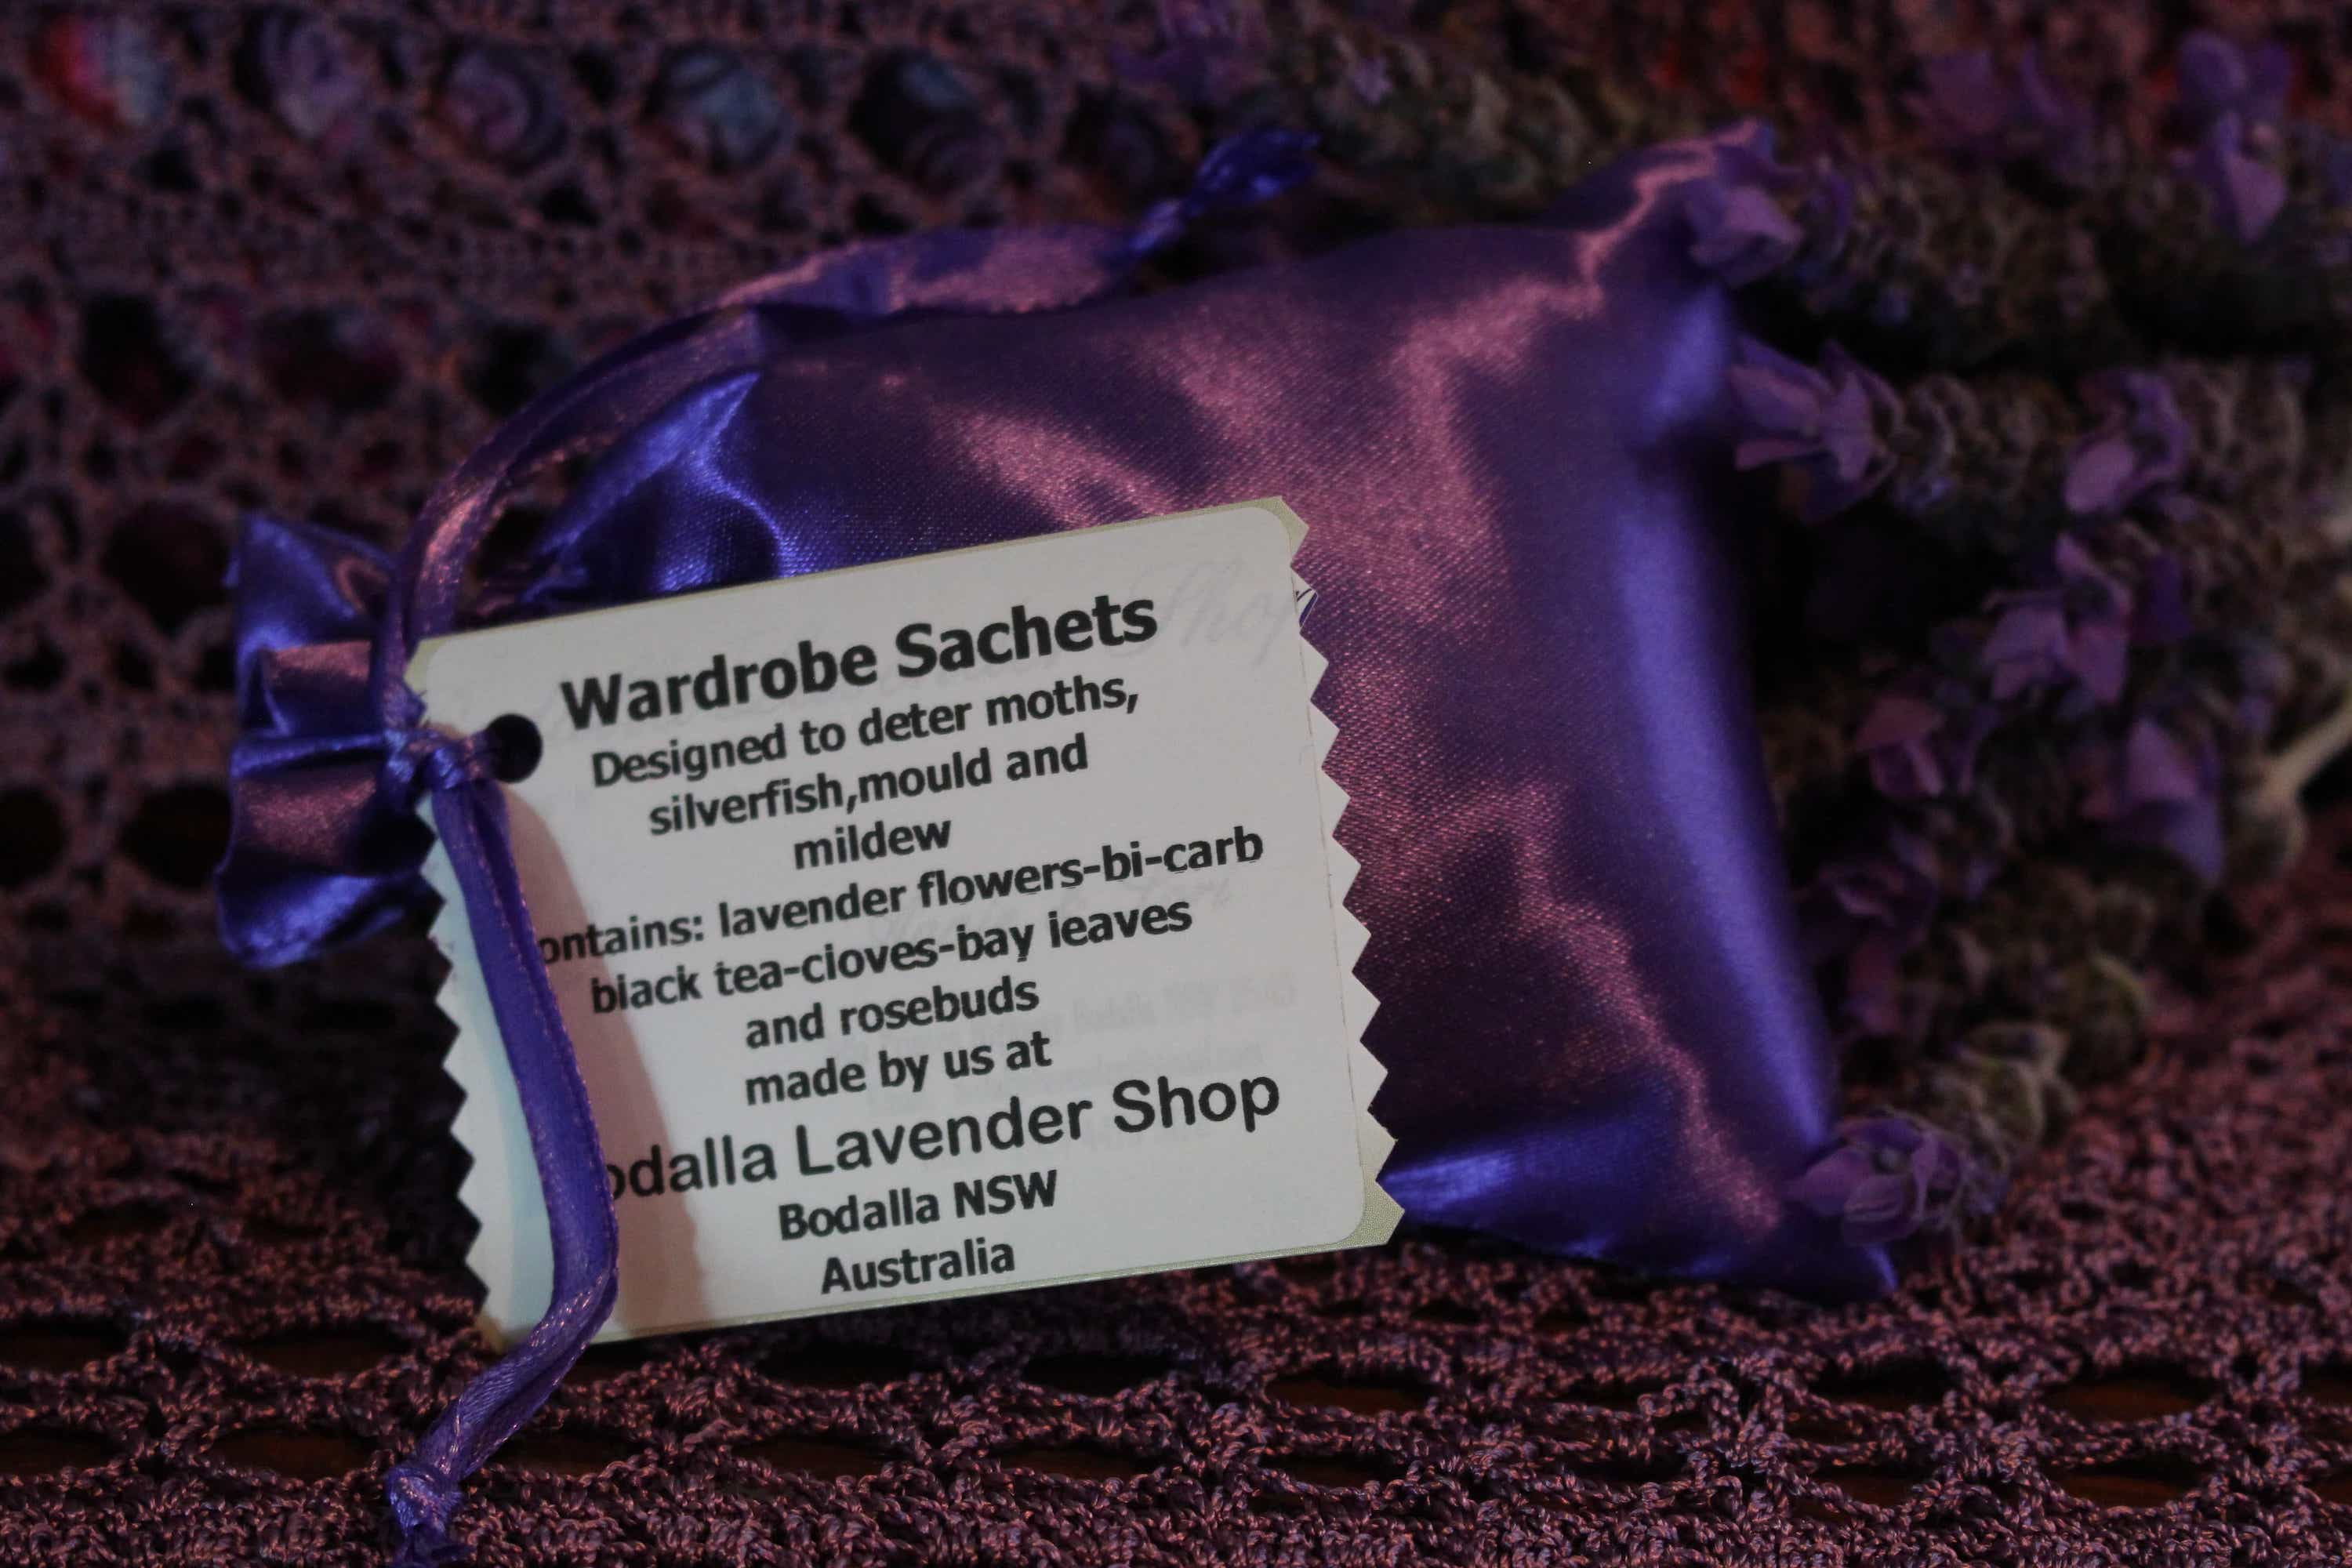 Photograph of an Wardrobe Sachets product